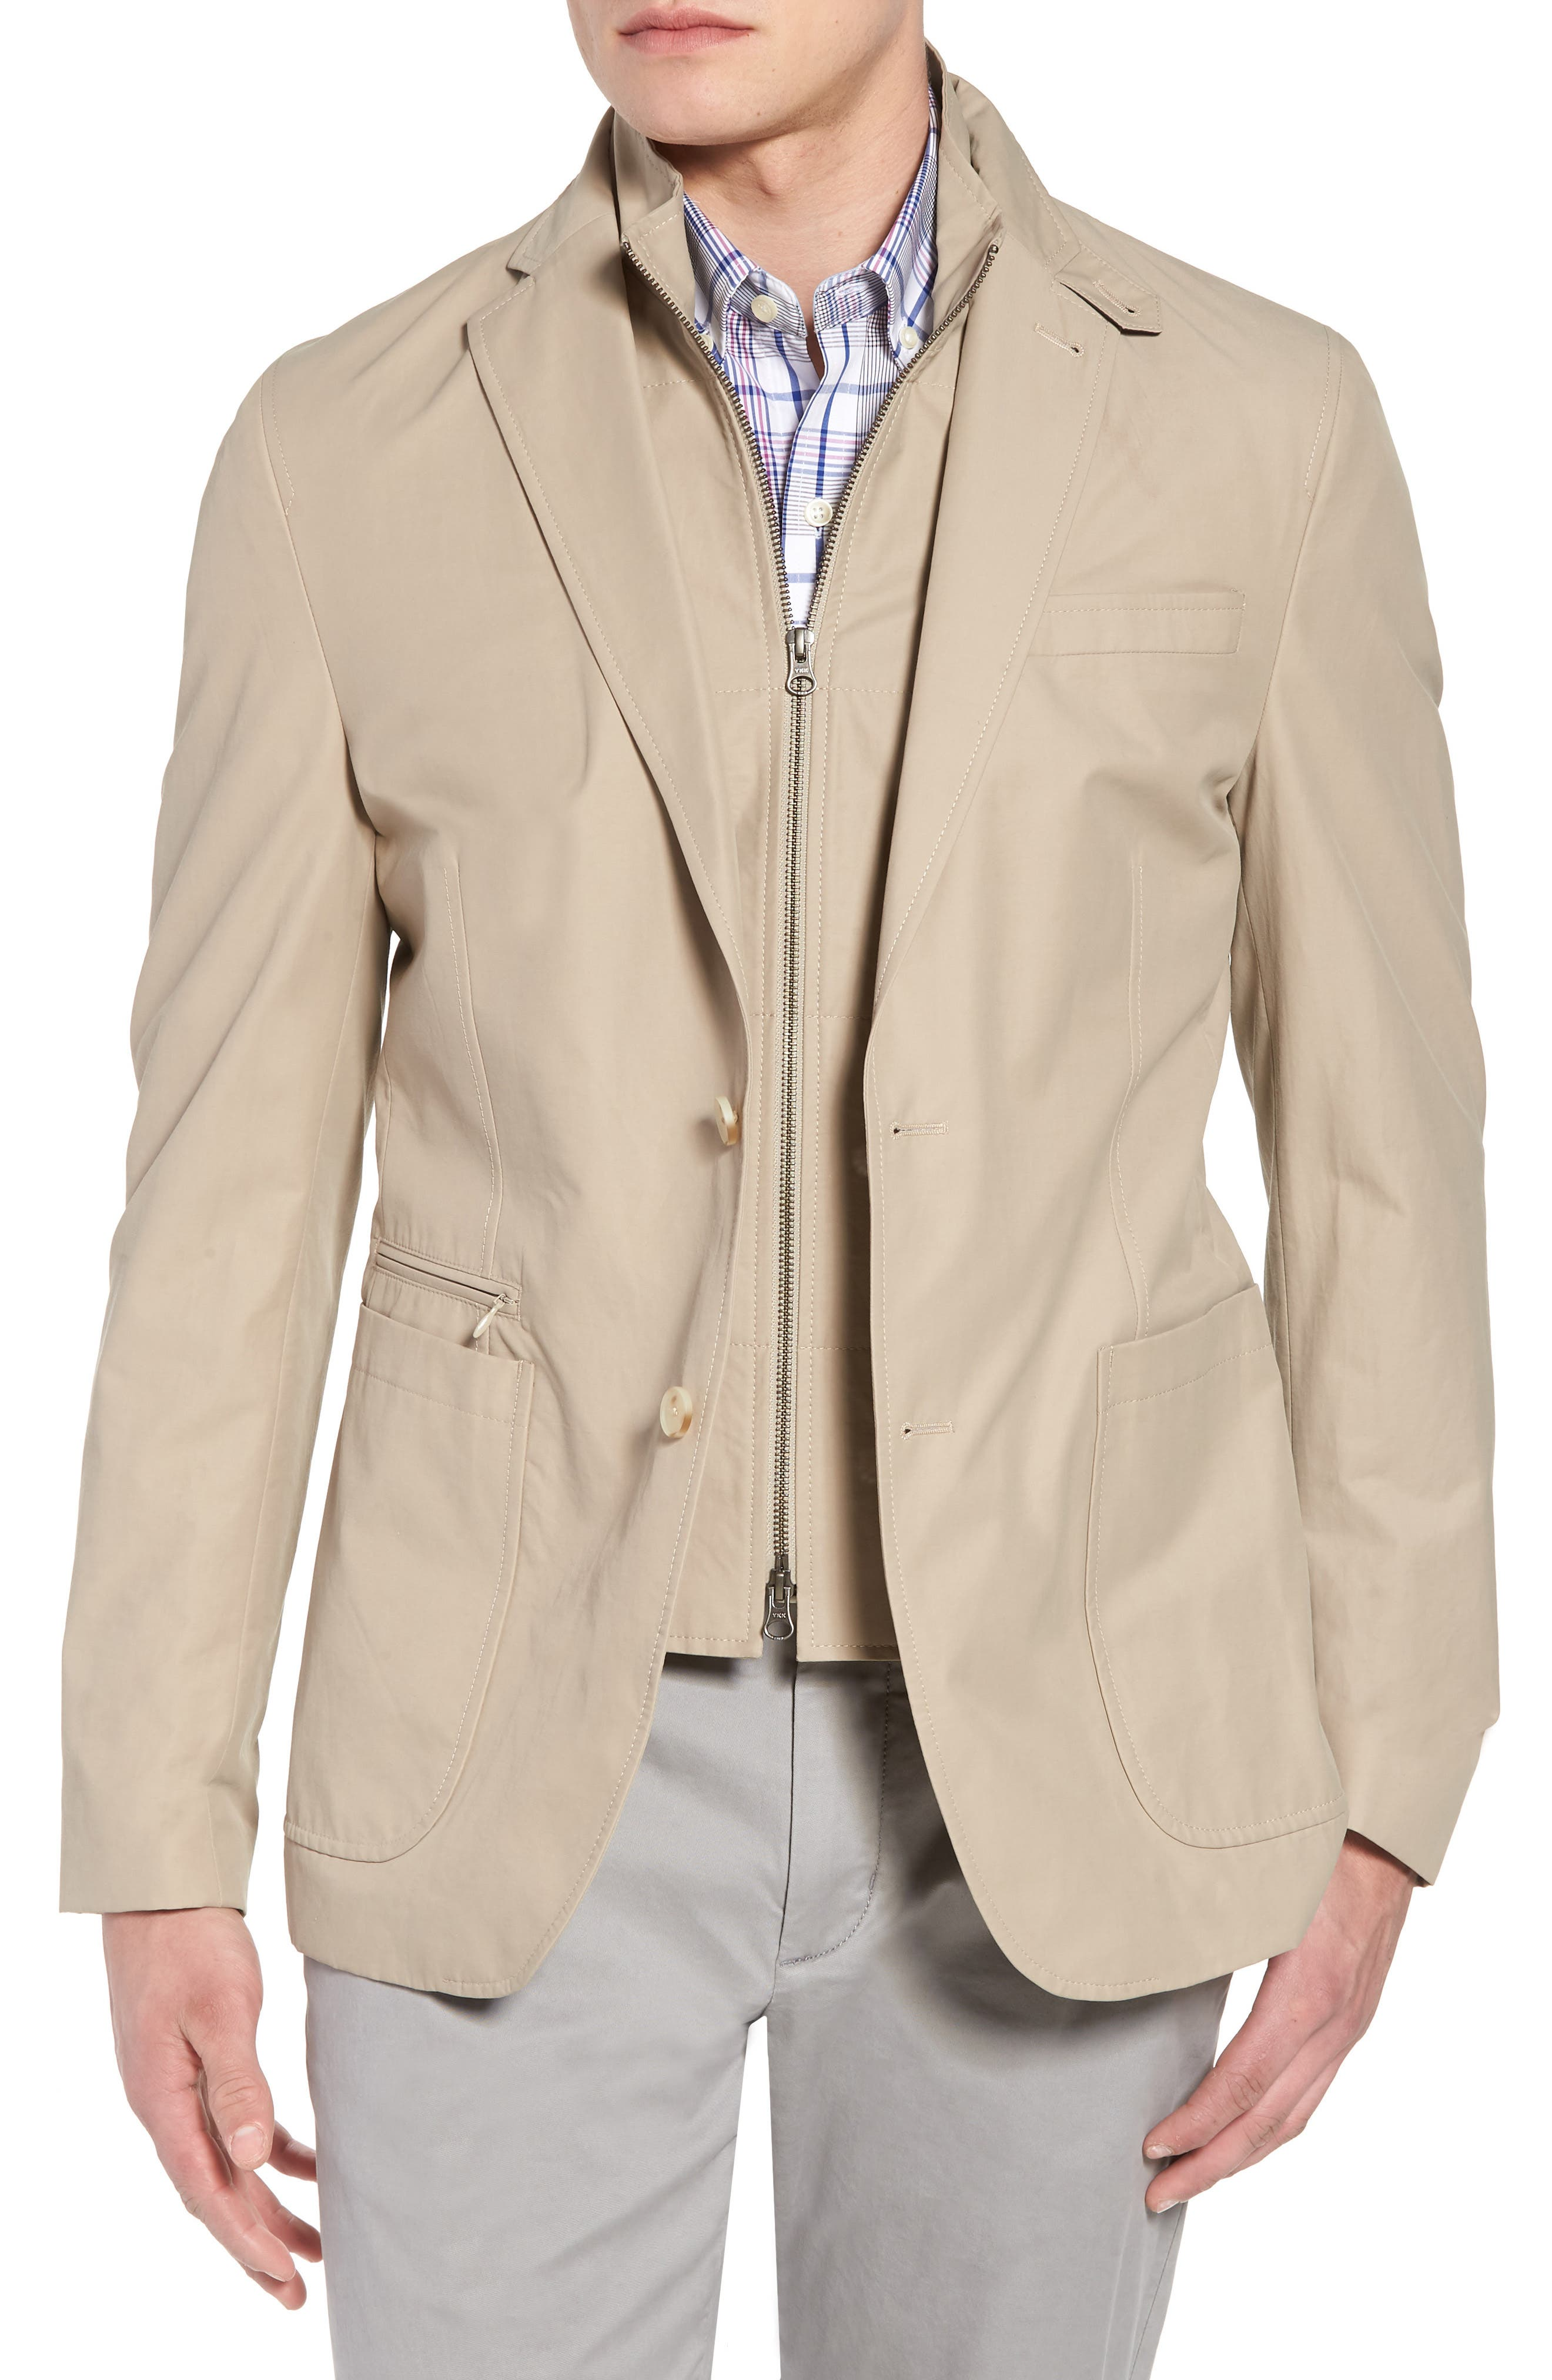 Jones AIM Classic Fit Hybrid Blazer,                         Main,                         color, Tan